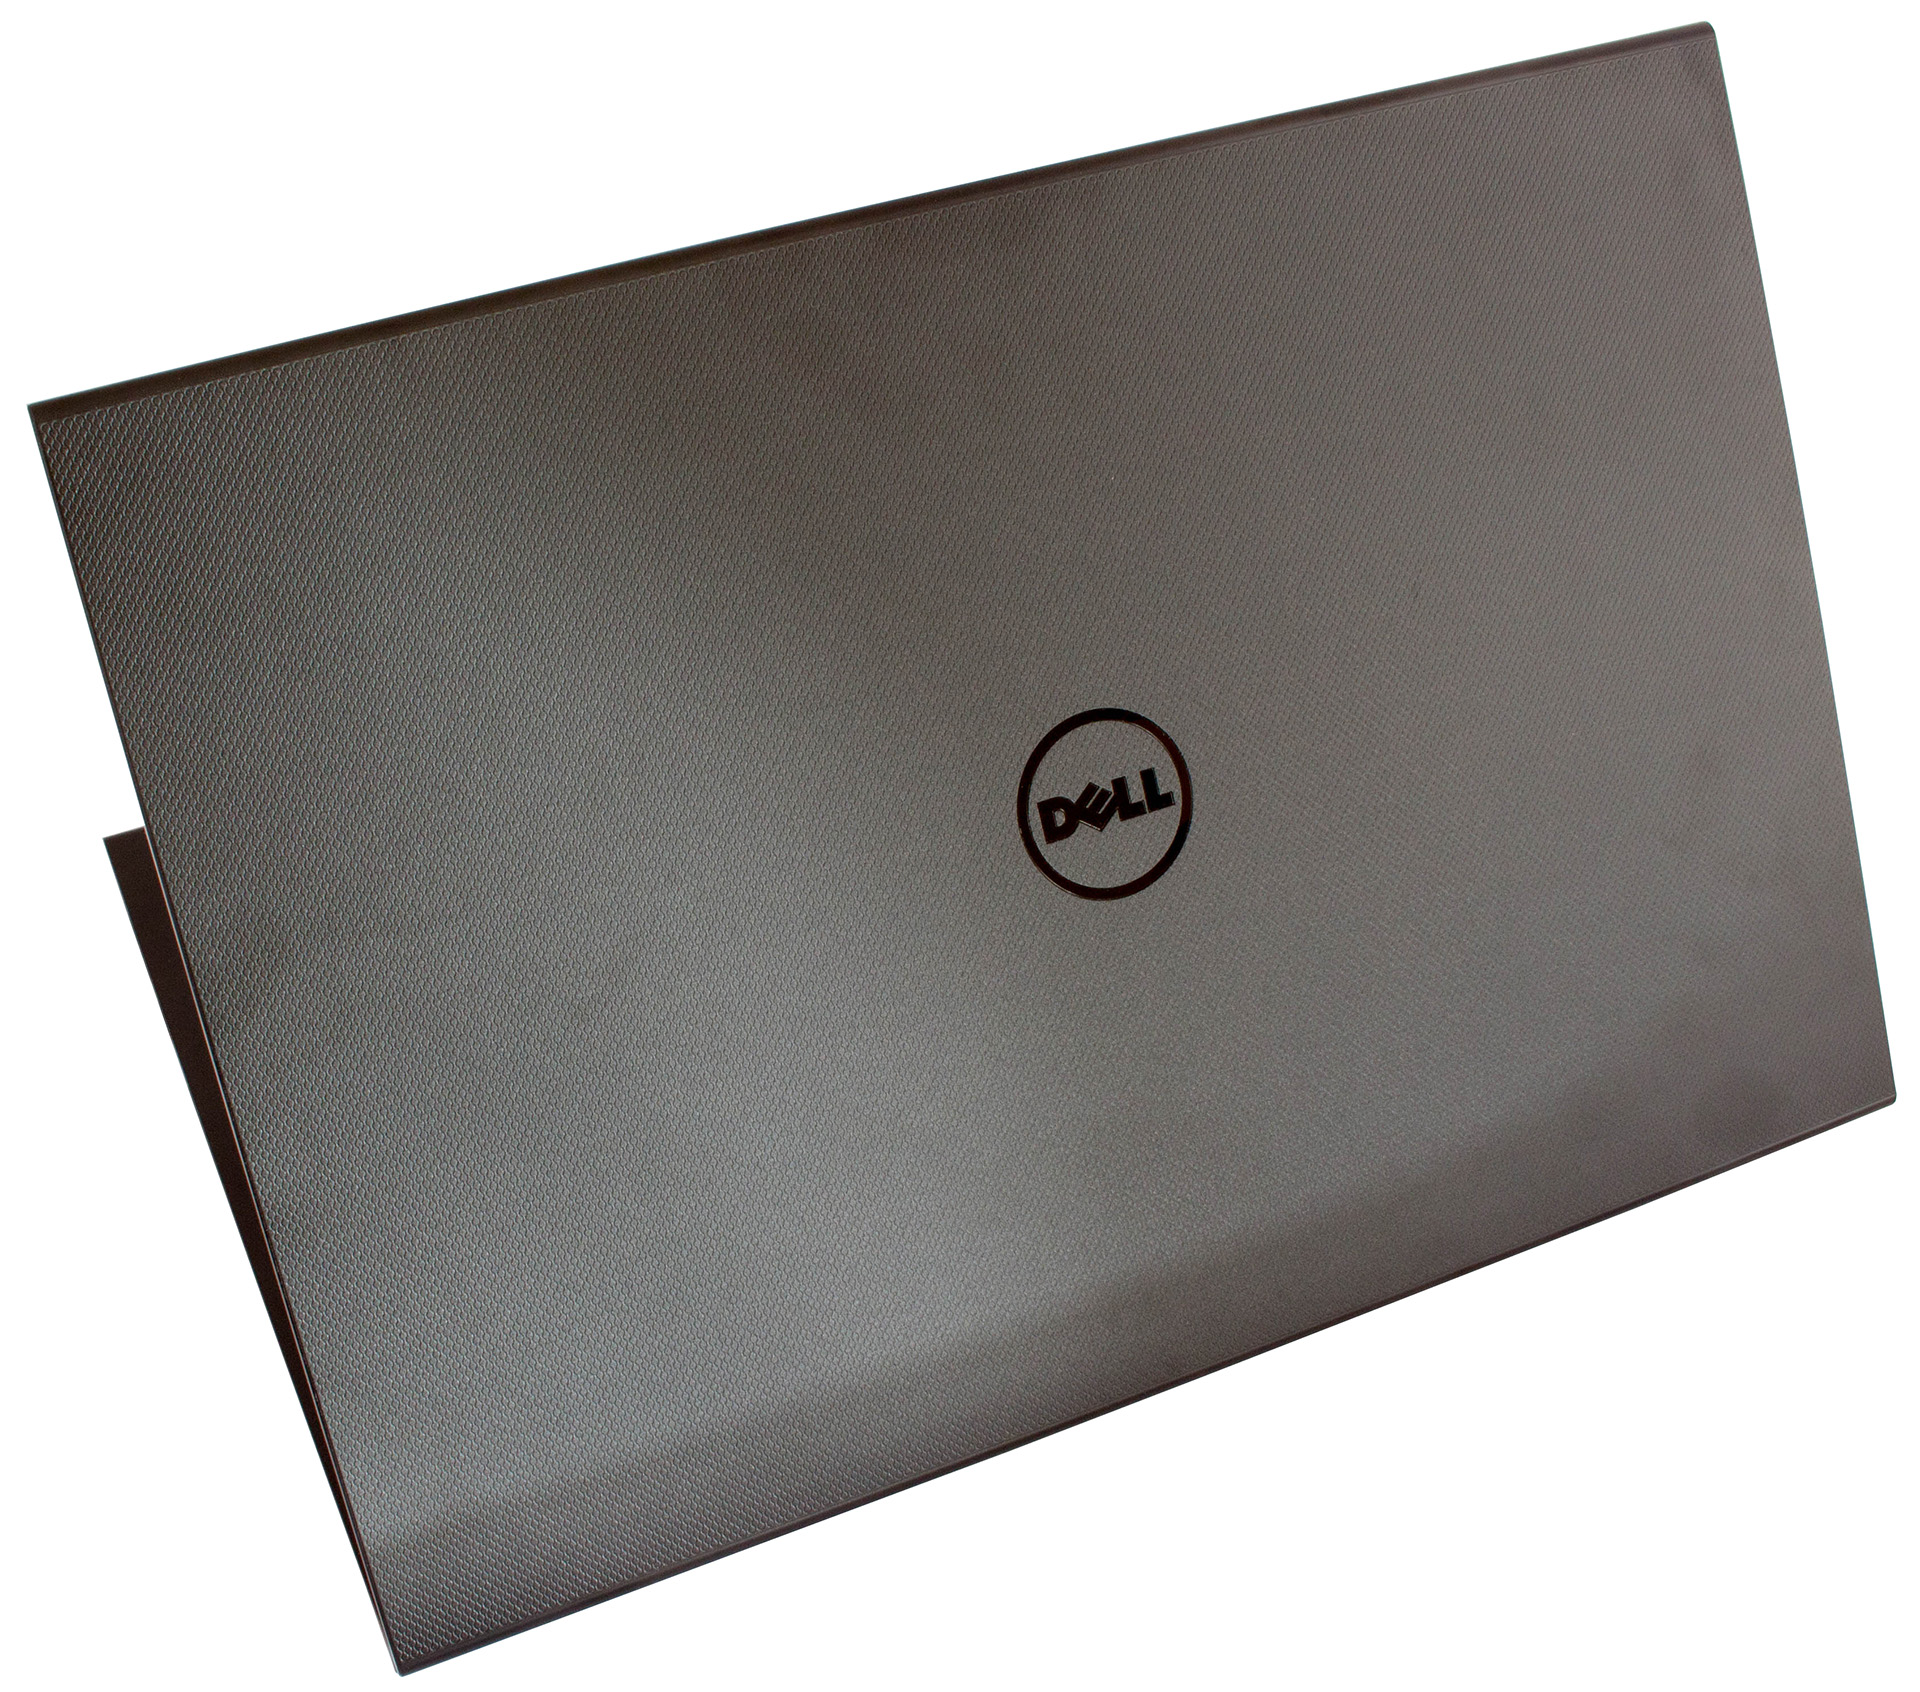 Dell Inspiron 3542 test